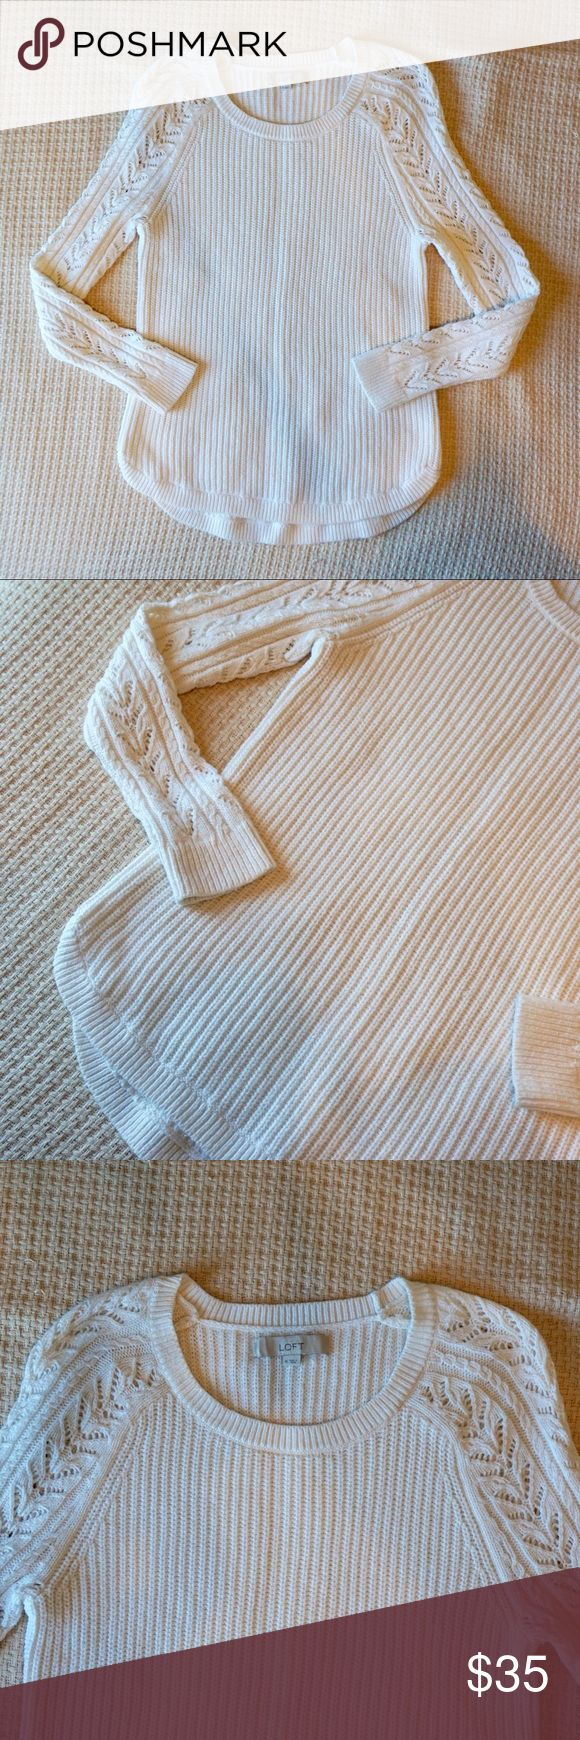 LOFT cream knit sweater with curved hemline Classic cream sweater with knit pattern down sleeves. Perfect condition. LOFT Sweaters Crew & Scoop Necks